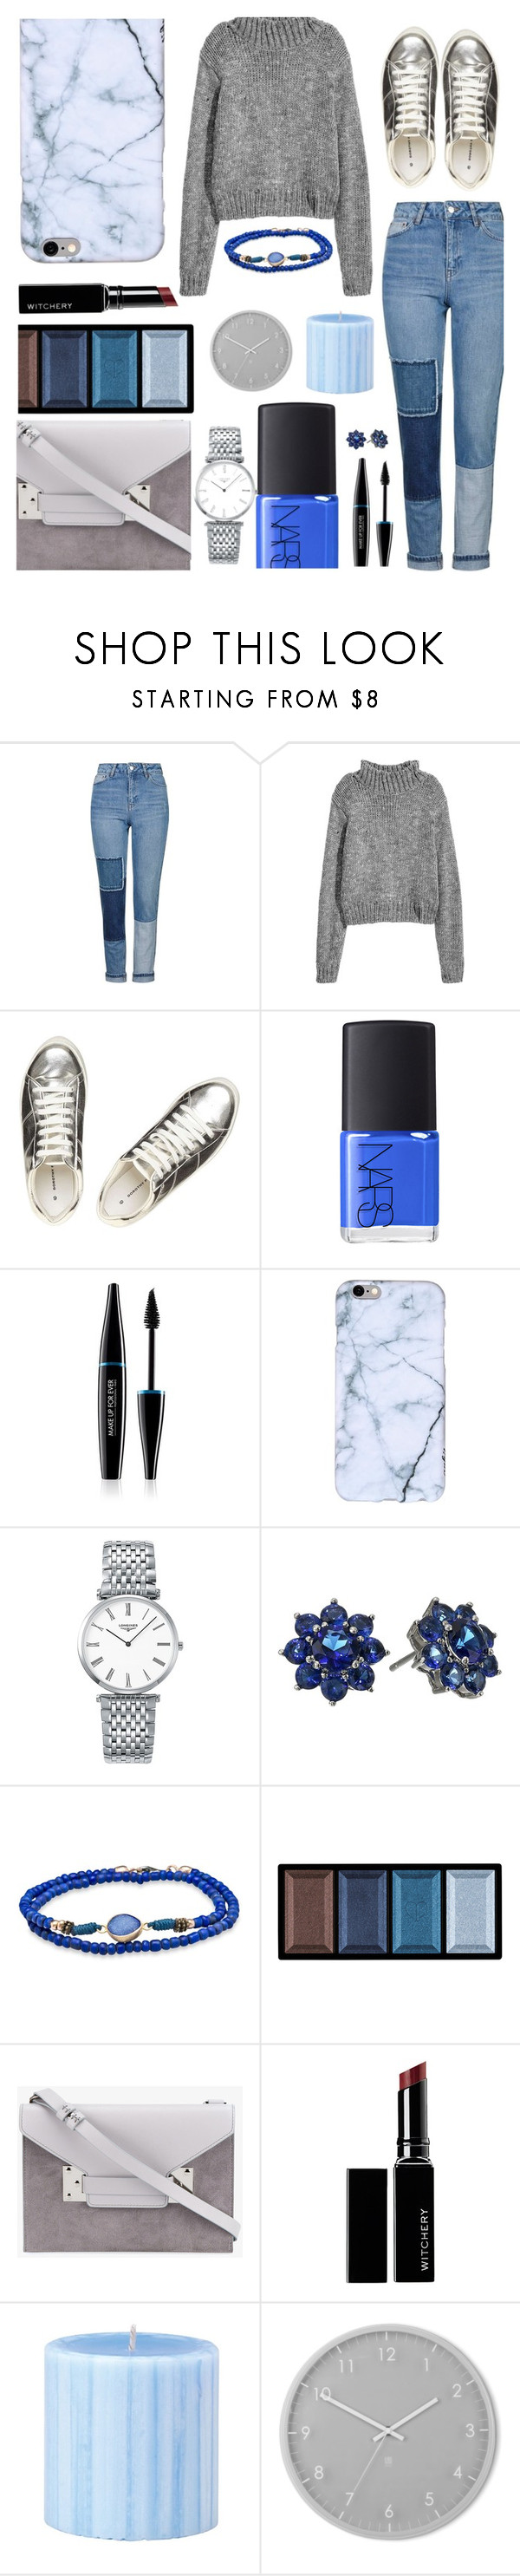 """""""Untitled #327"""" by romi-kella ❤ liked on Polyvore featuring Topshop, Dorothy Perkins, NARS Cosmetics, MAKE UP FOR EVER, Longines, Nina, Platadepalo, Clé de Peau Beauté, Sophie Hulme and Witchery"""